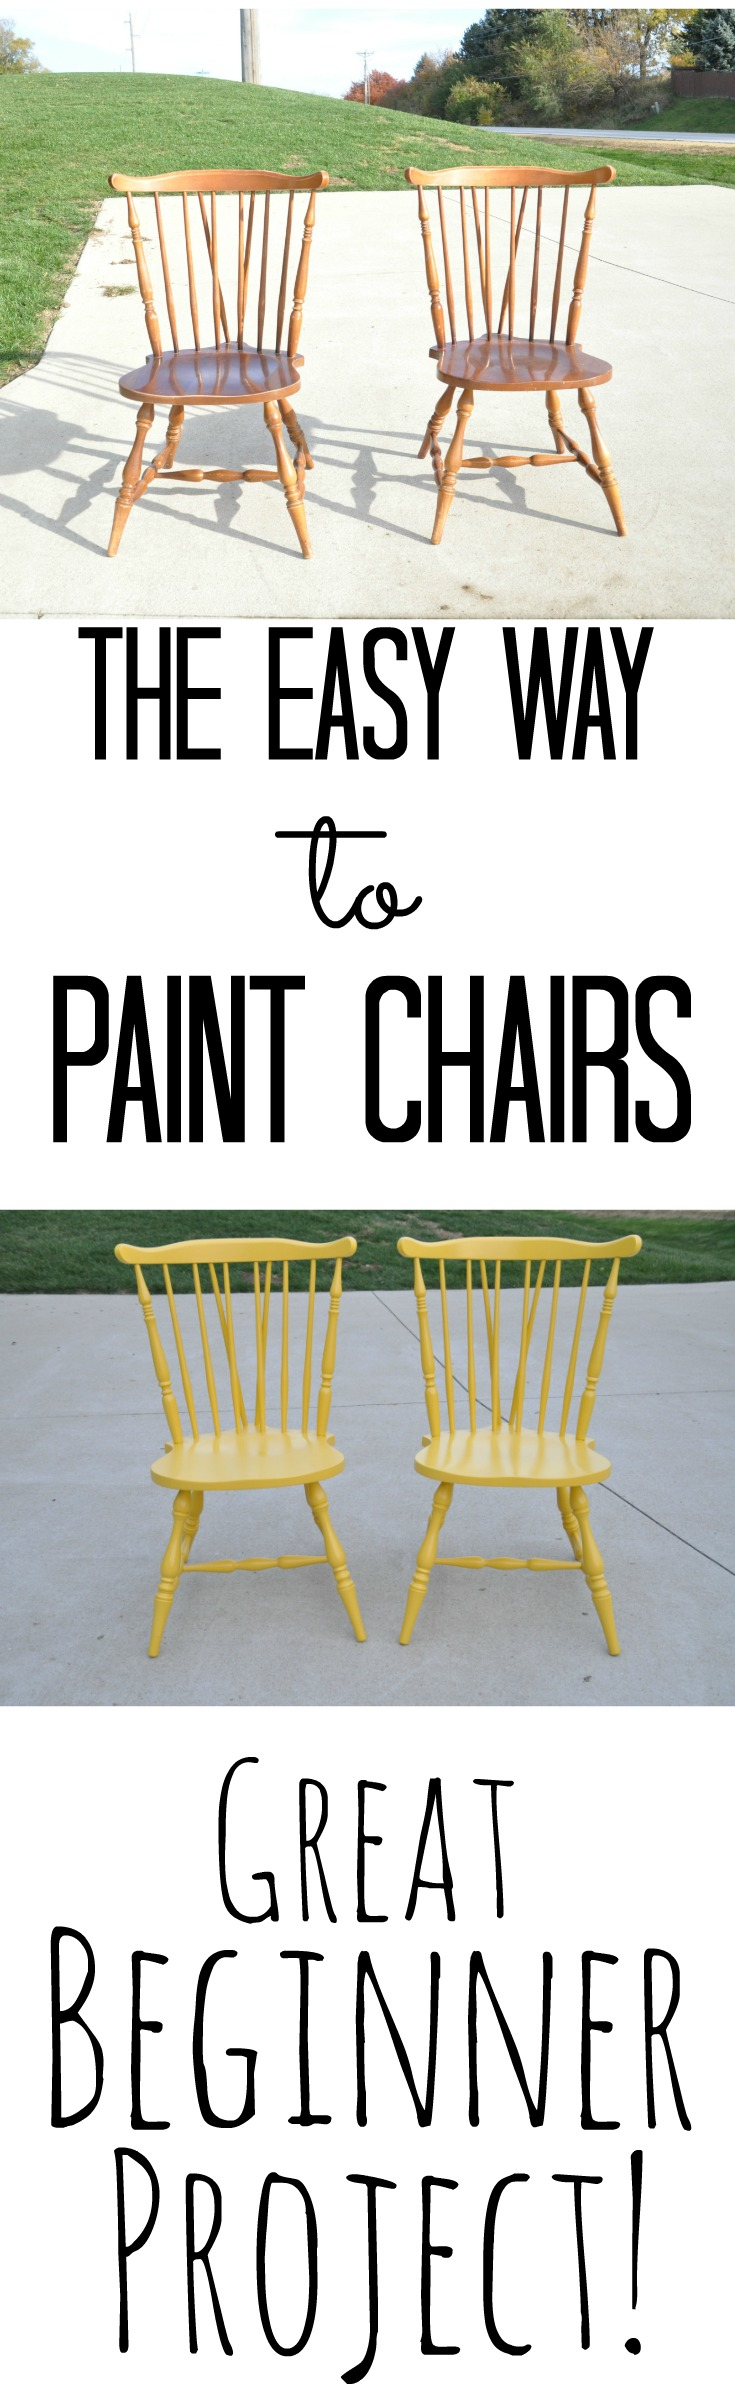 The Easy Way to Paint Chairs {Great Beginner Project}.jpg